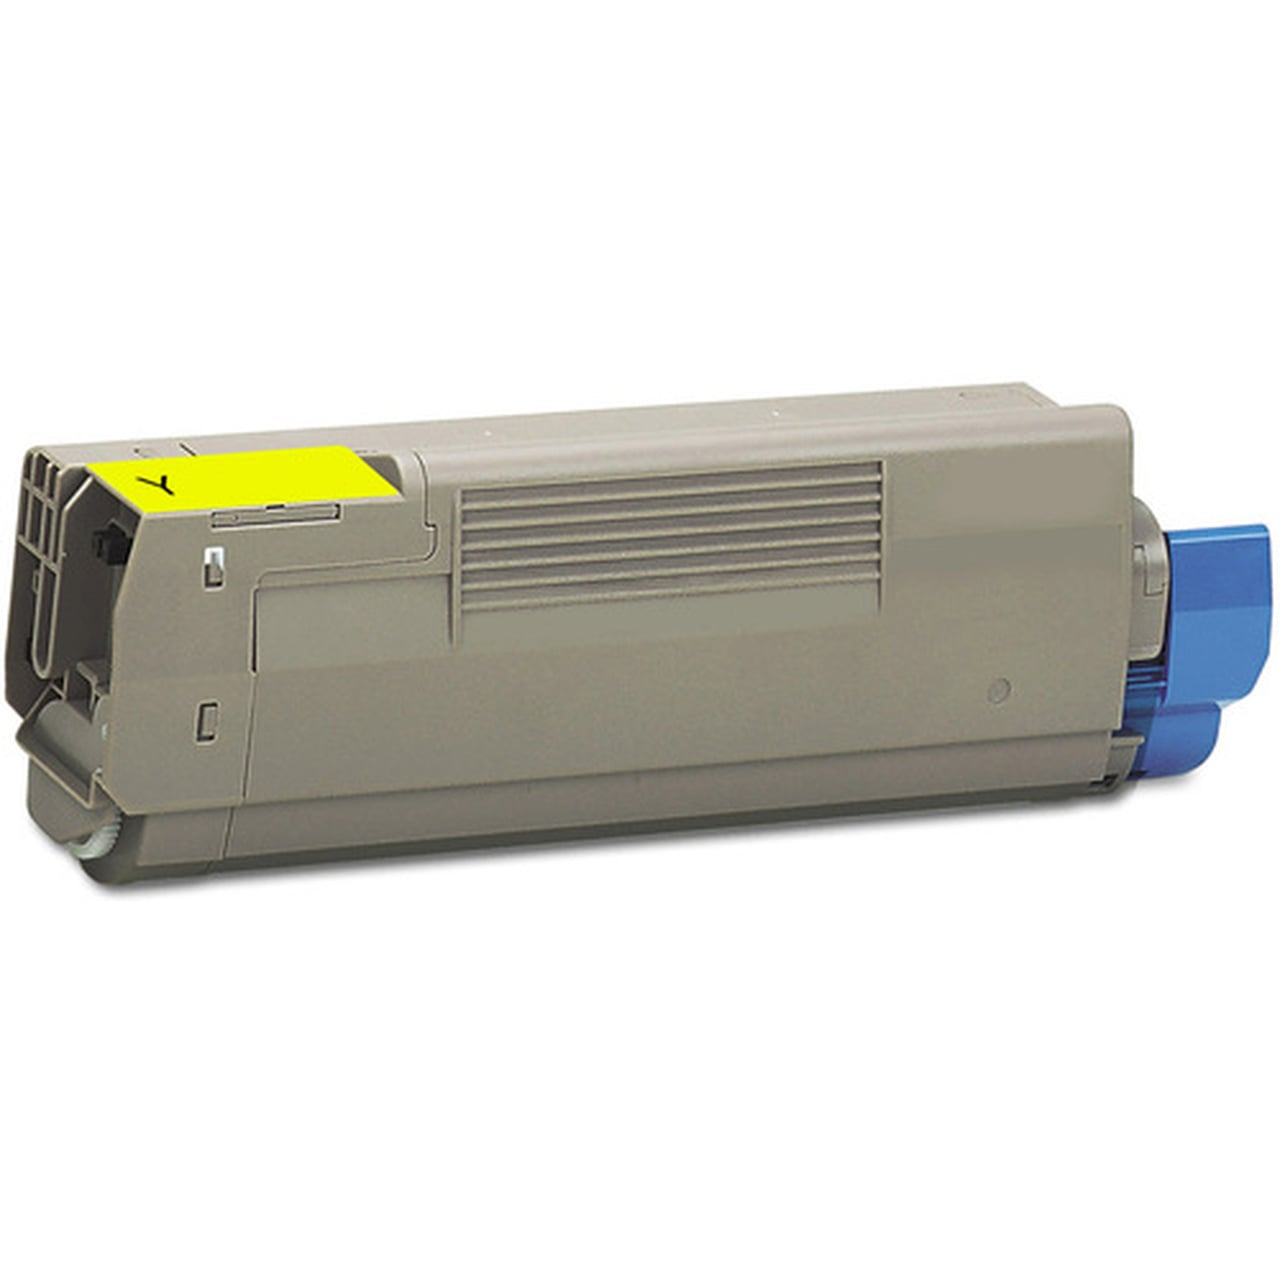 44315301 Toner Cartridge - Okidata Remanufactured (Yellow)